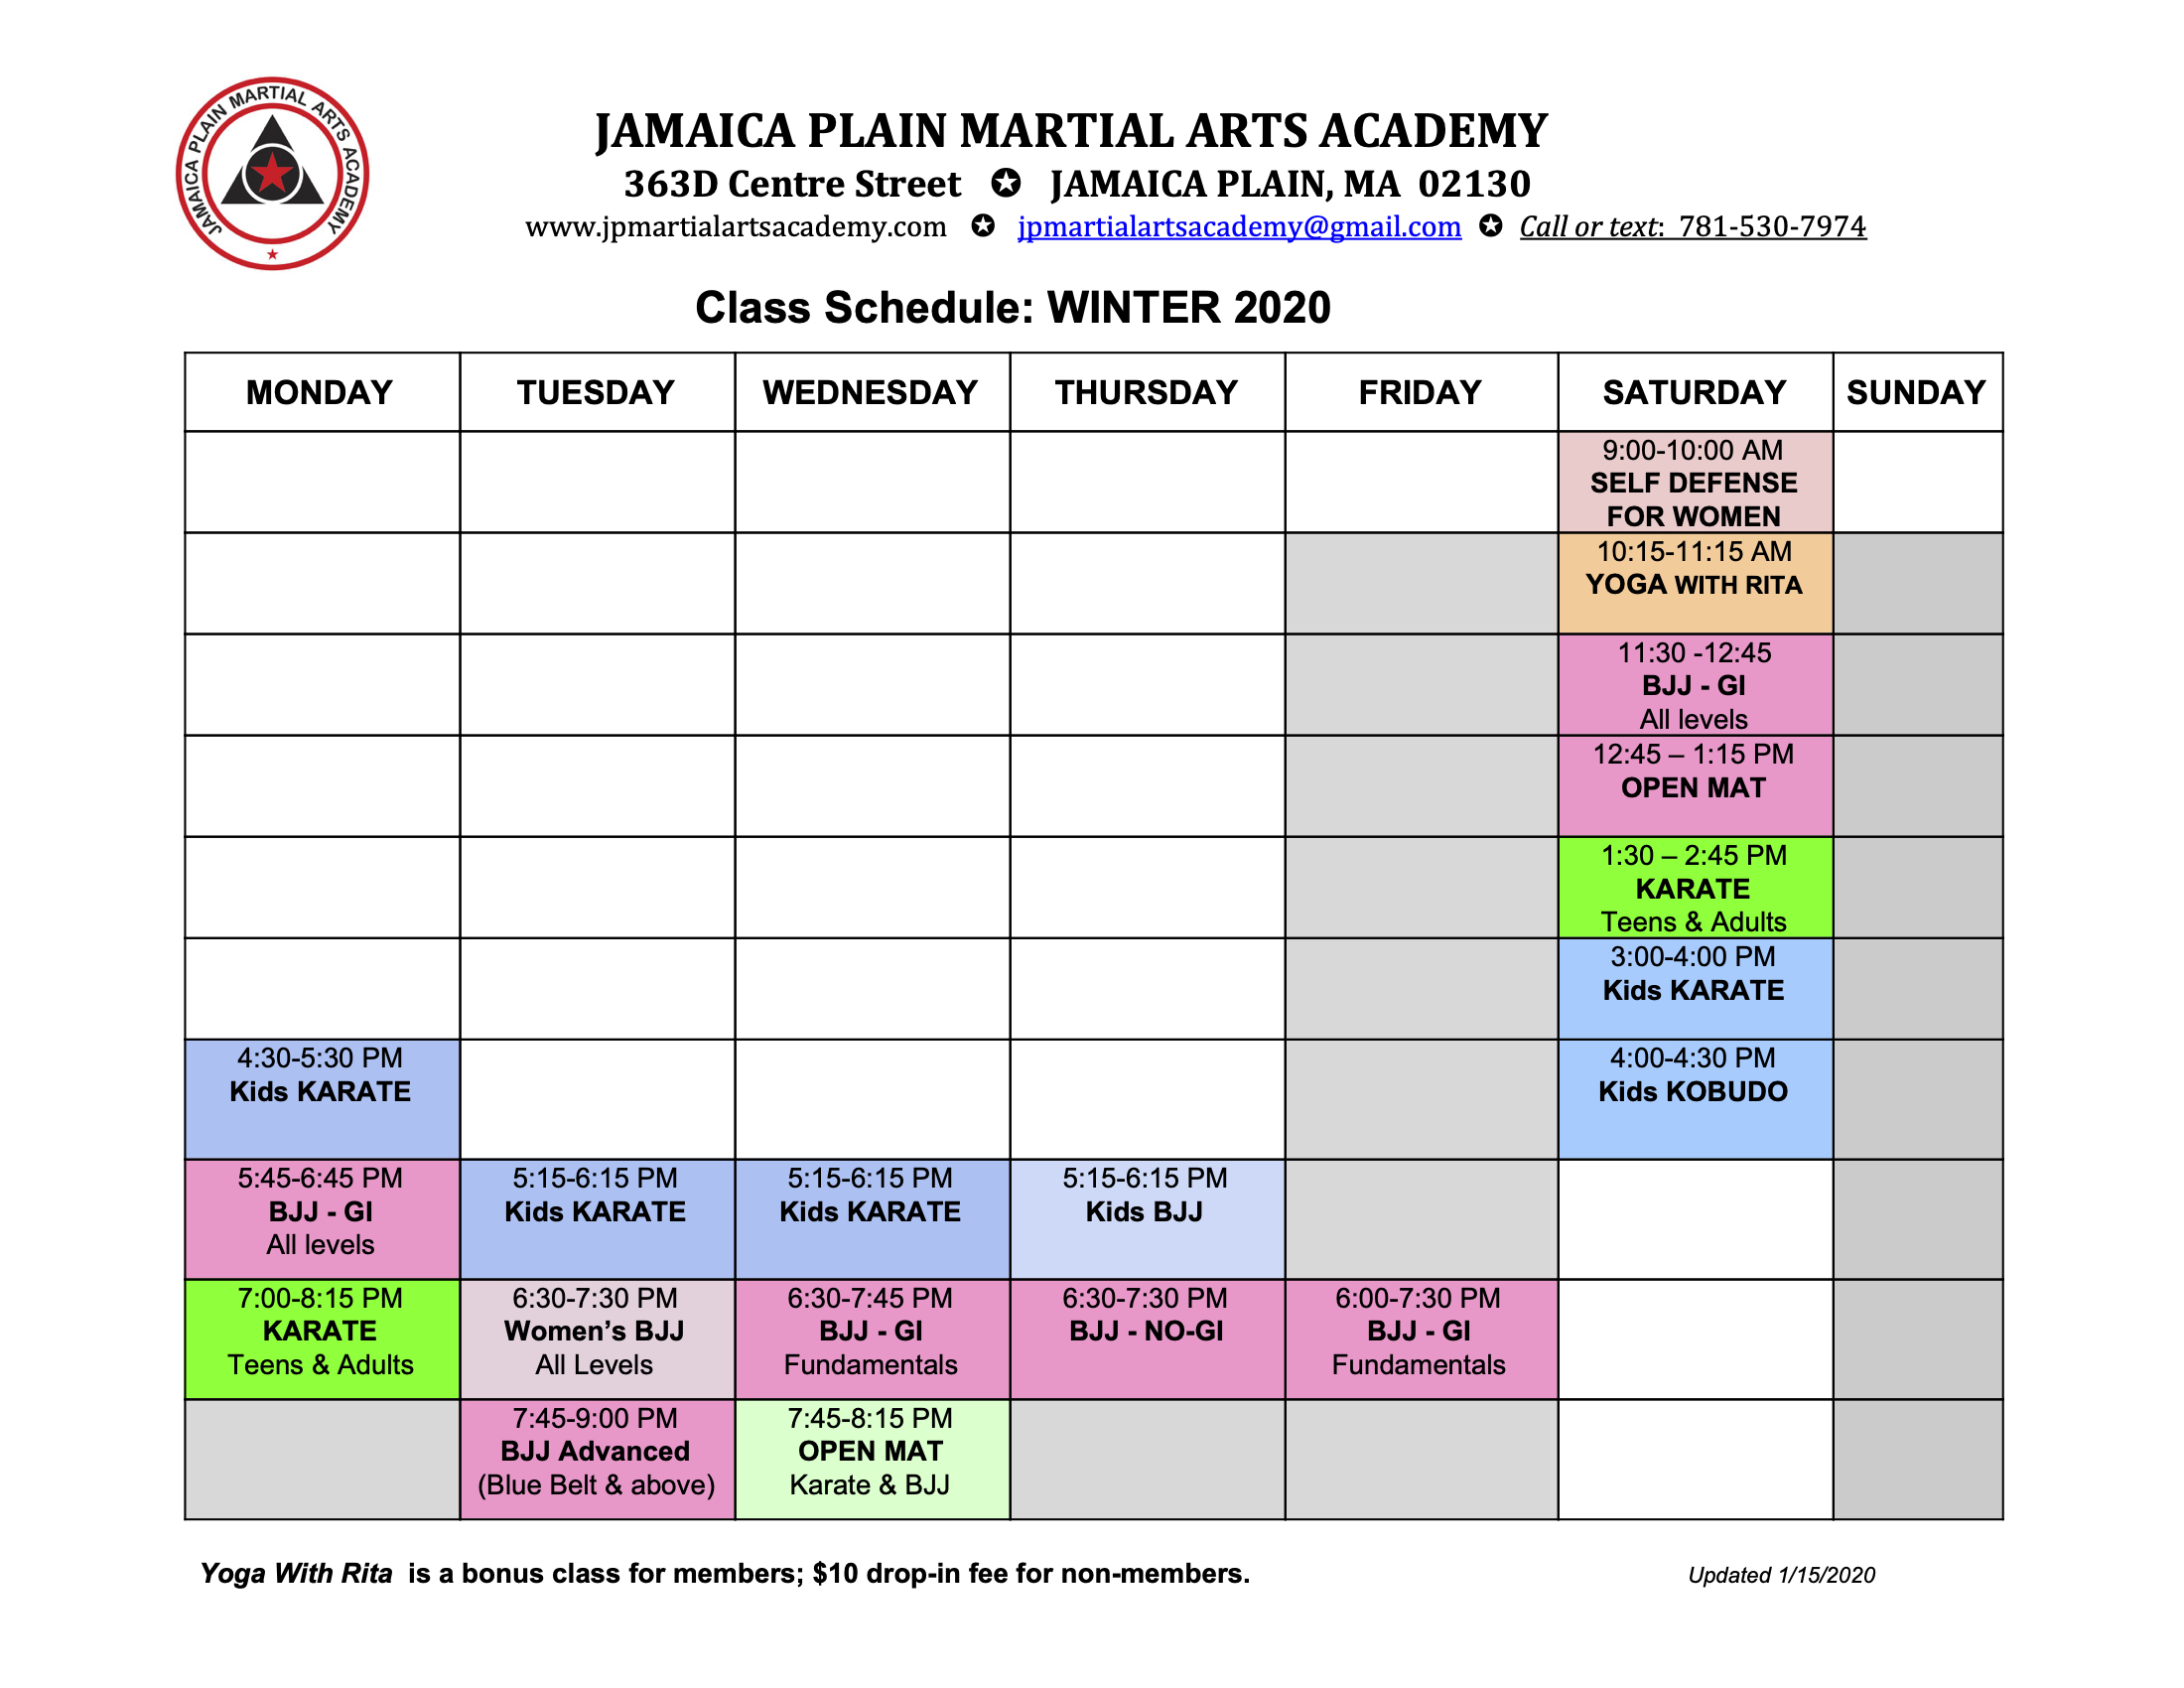 2020 Winter schedule